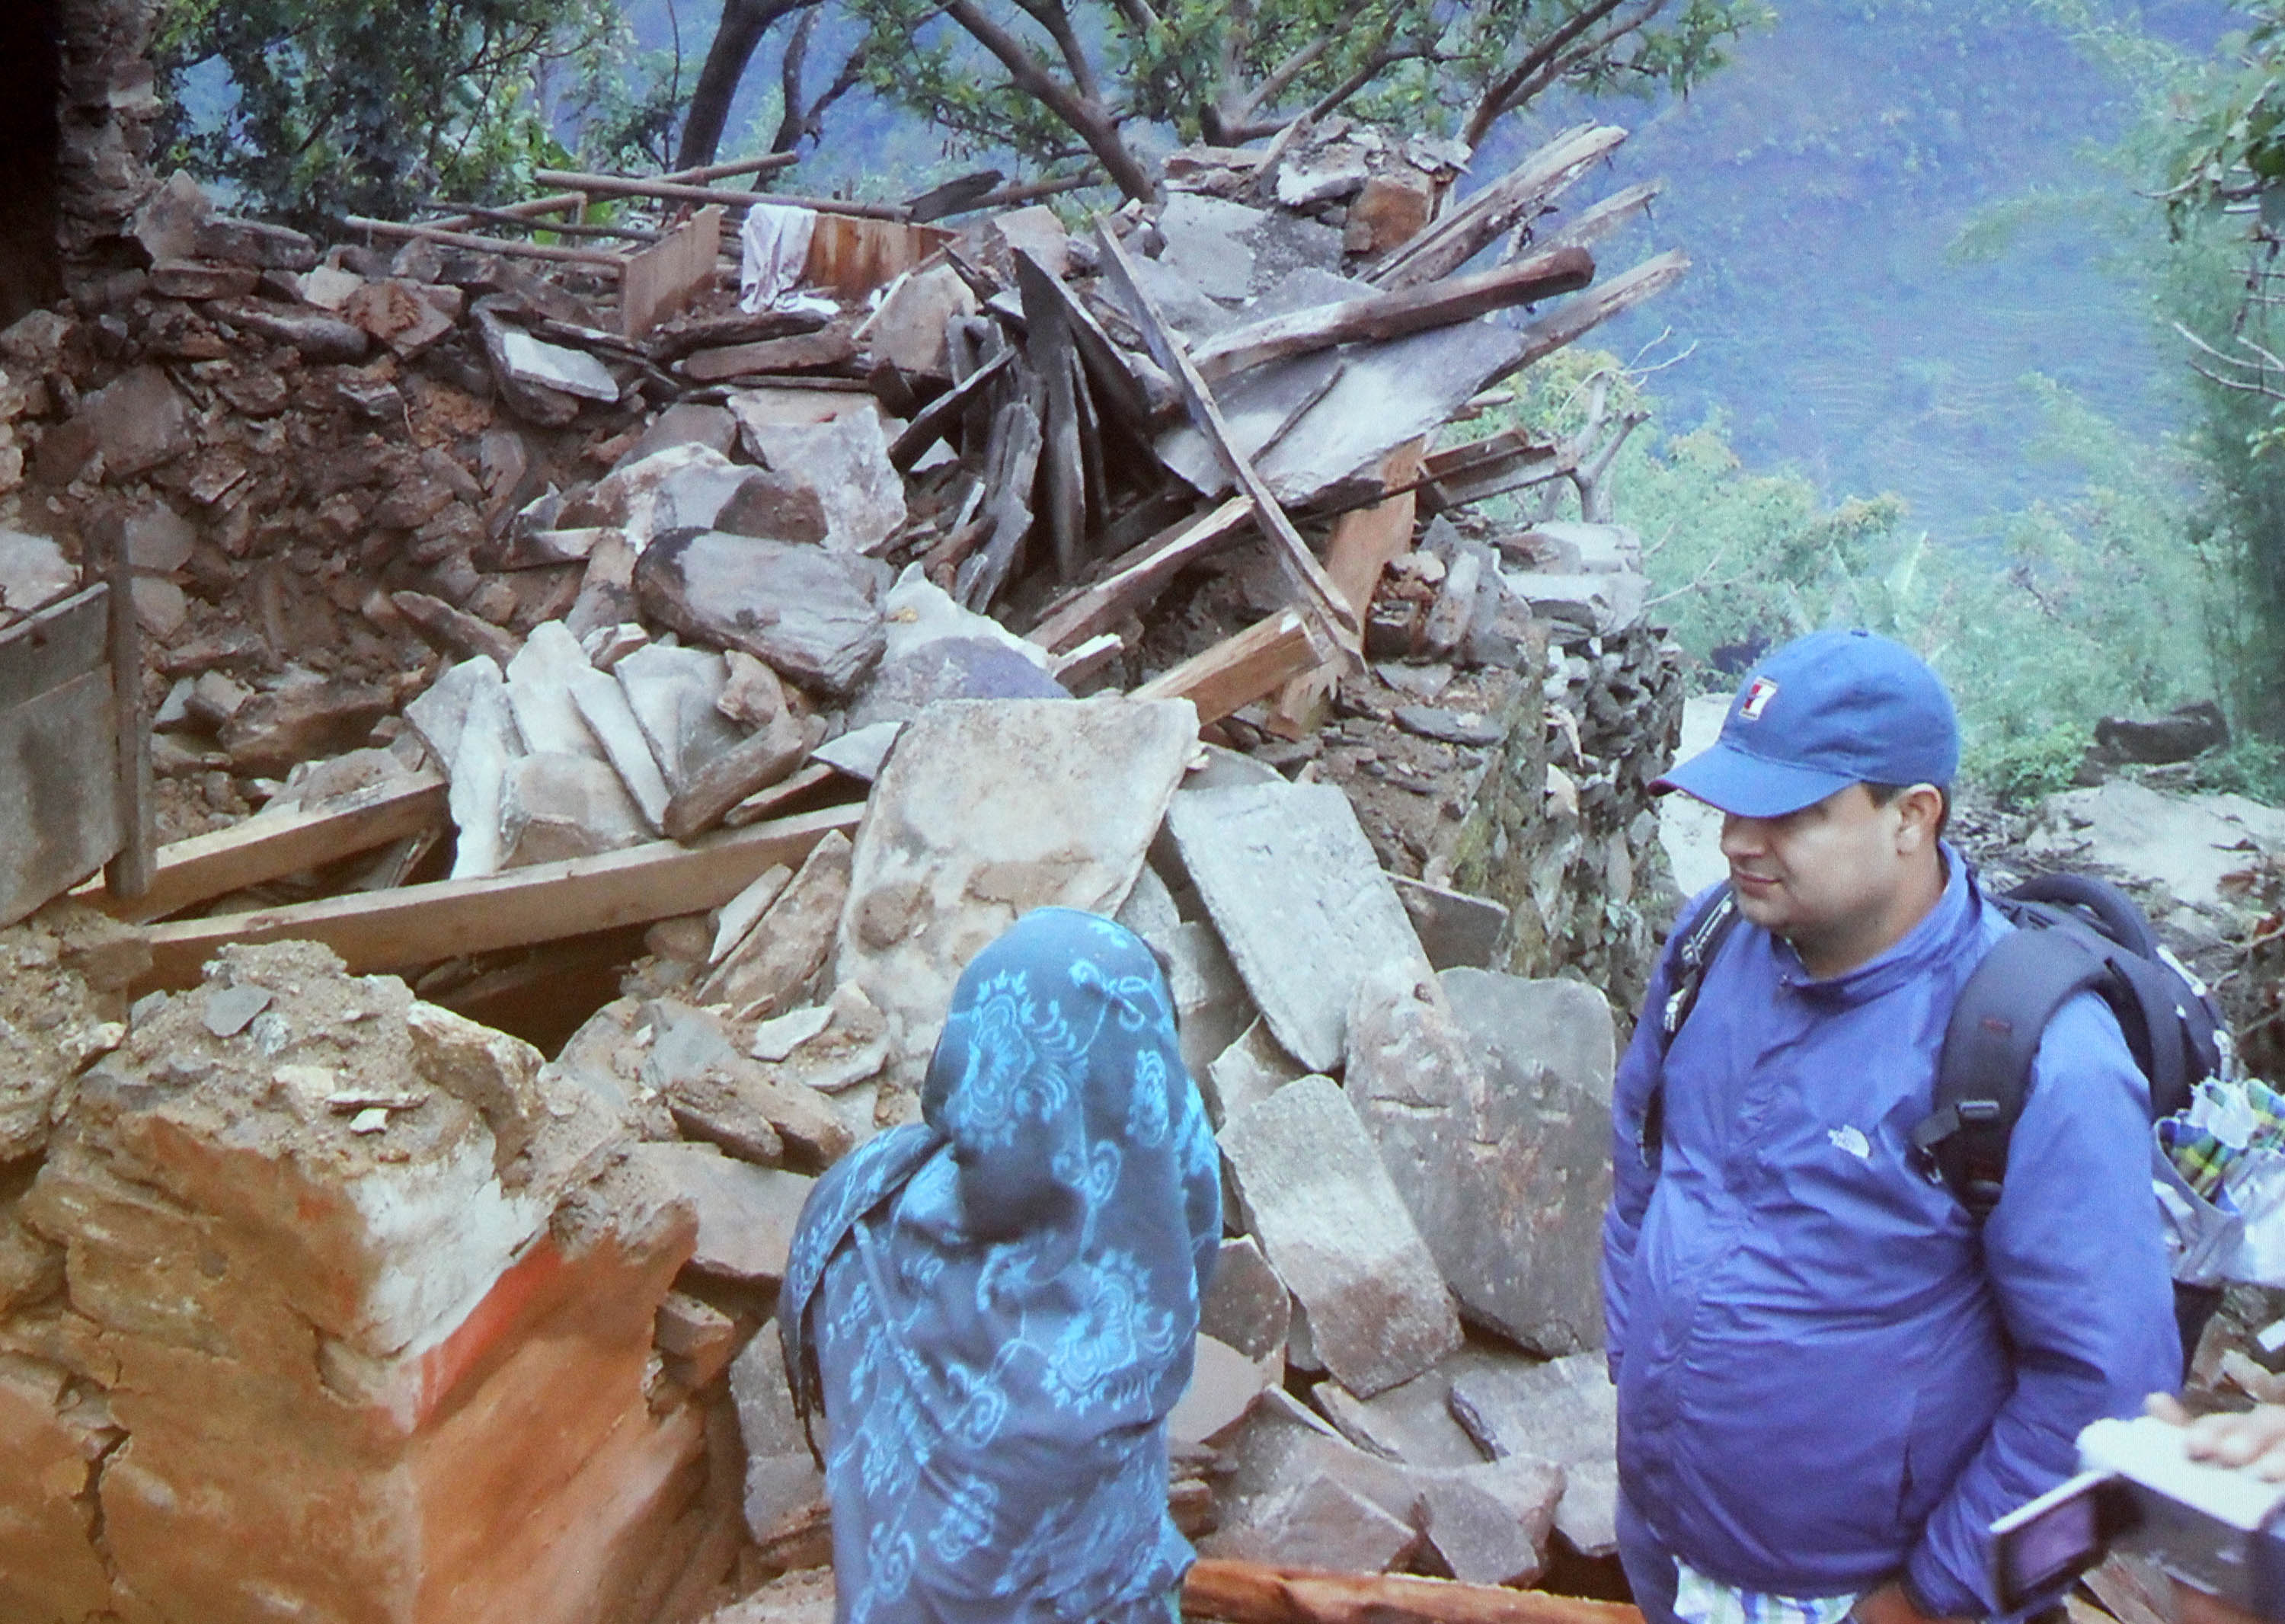 ISER-N staff coordinate disaster relief efforts after Nepal Earthquake. Image courtesy: Institute for Social and Environmental Research-Nepal